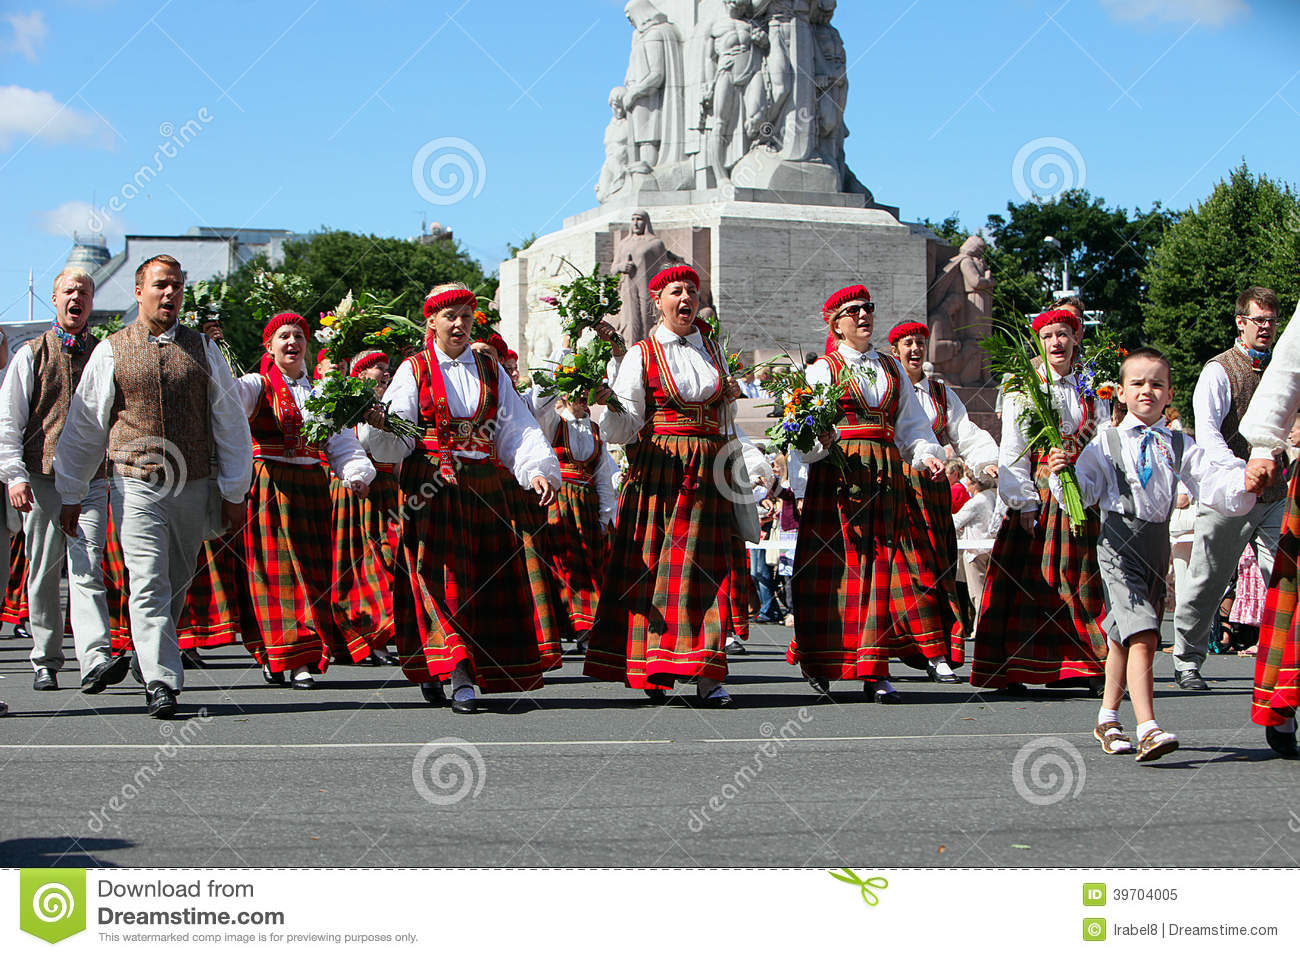 RIGA, LATVIA - JULY 06: People in national costumes at the Latvian National Song and Dance Festival on July 06, 2013. Holiday was